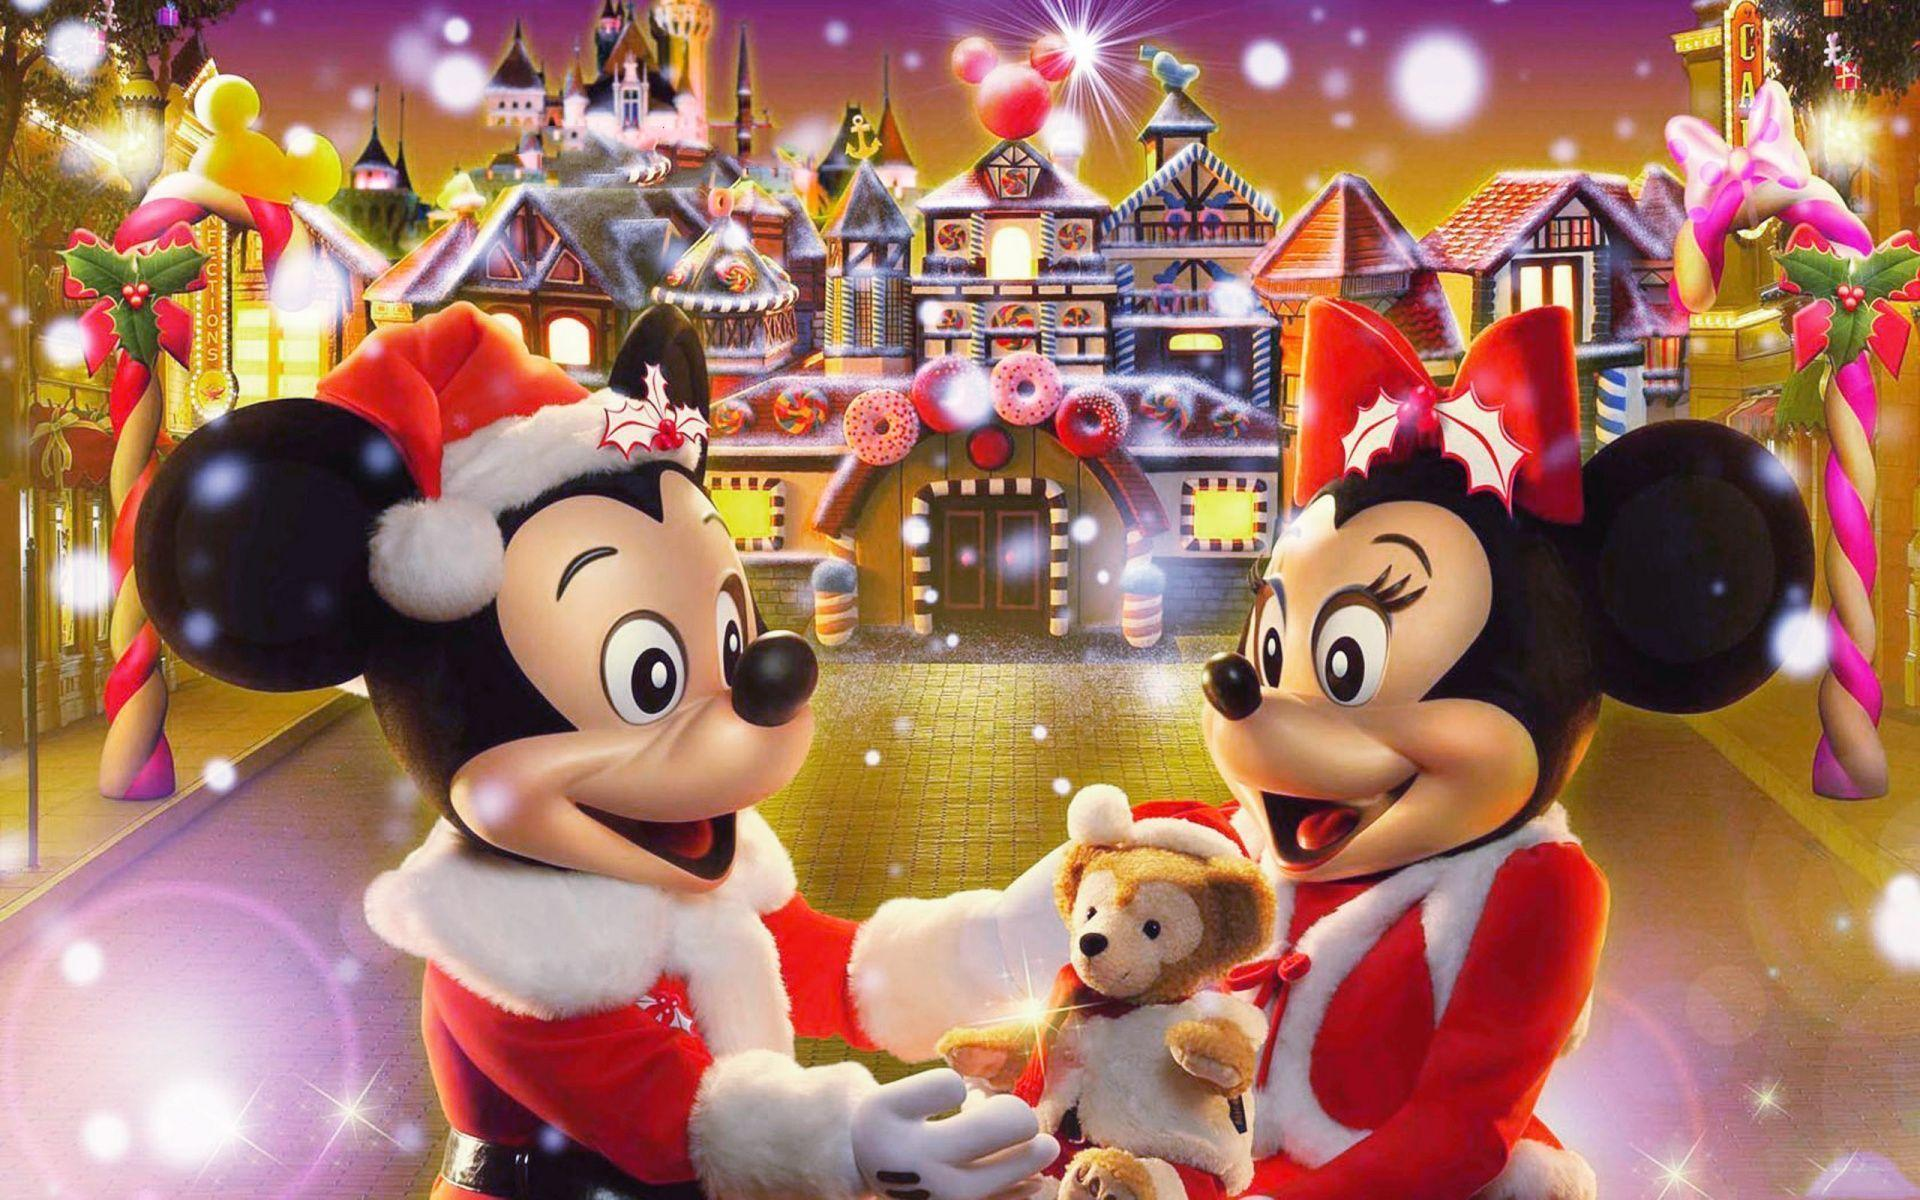 Disney Christmas Backgrounds Wallpapers Panda 1024x768PX ~ Wallpapers